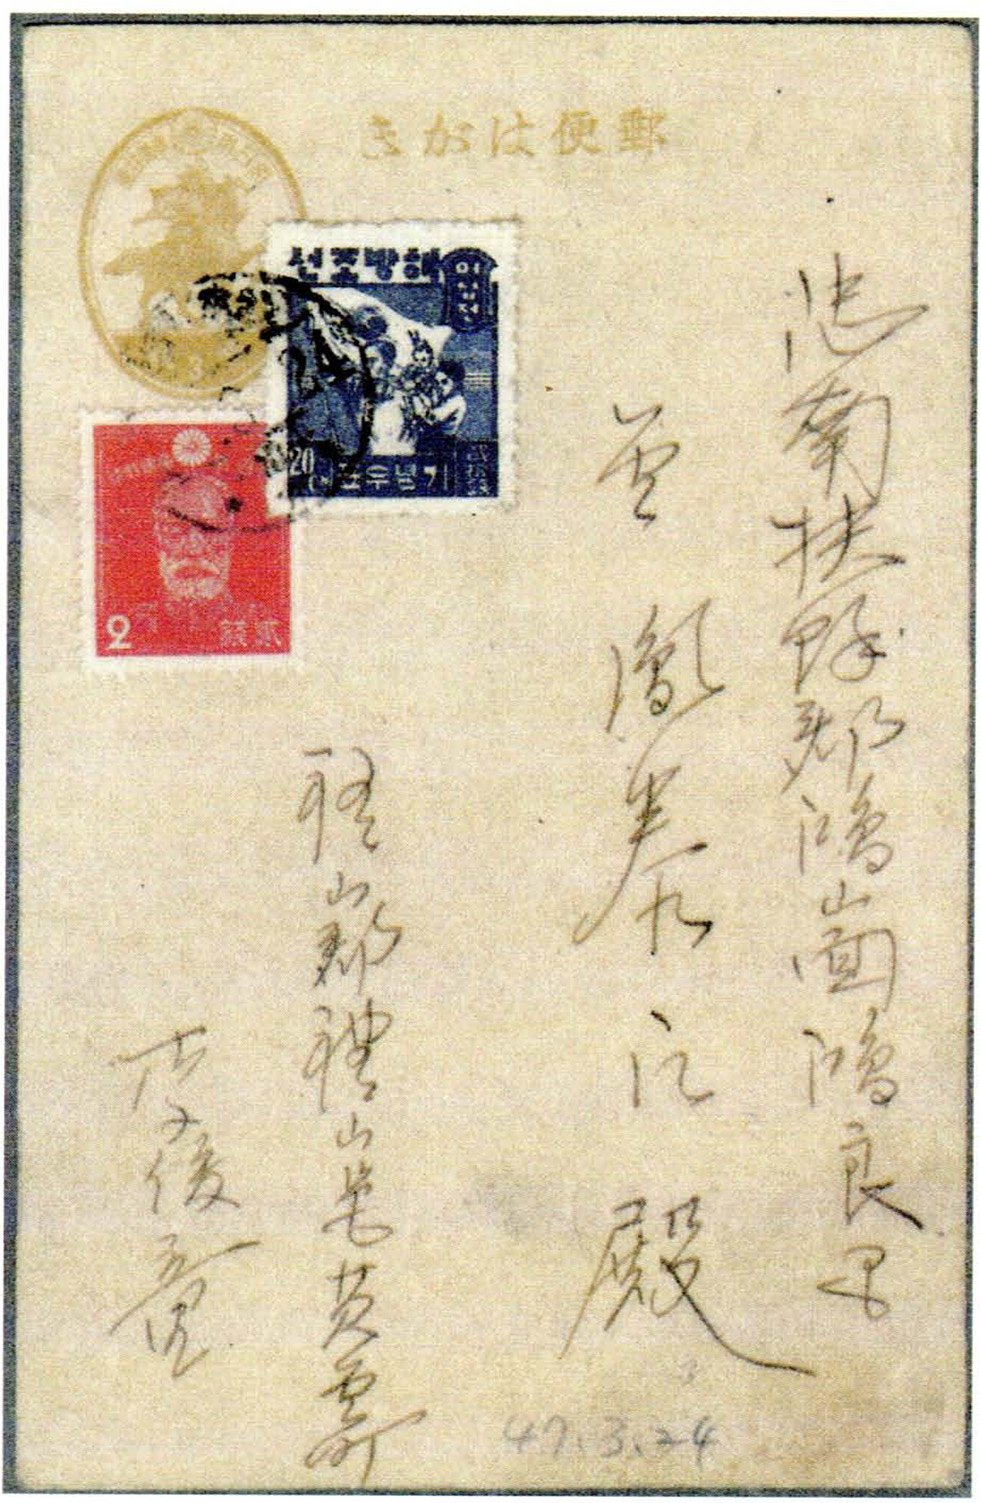 Figure 5, A rare postcard at the 1947 25 sen rate made up with the Japanese postcard 3 sen, Japanese 2 sen Nogi Showa stamp, plus the 20 chon (20 sen) South Korea Liberation issue.